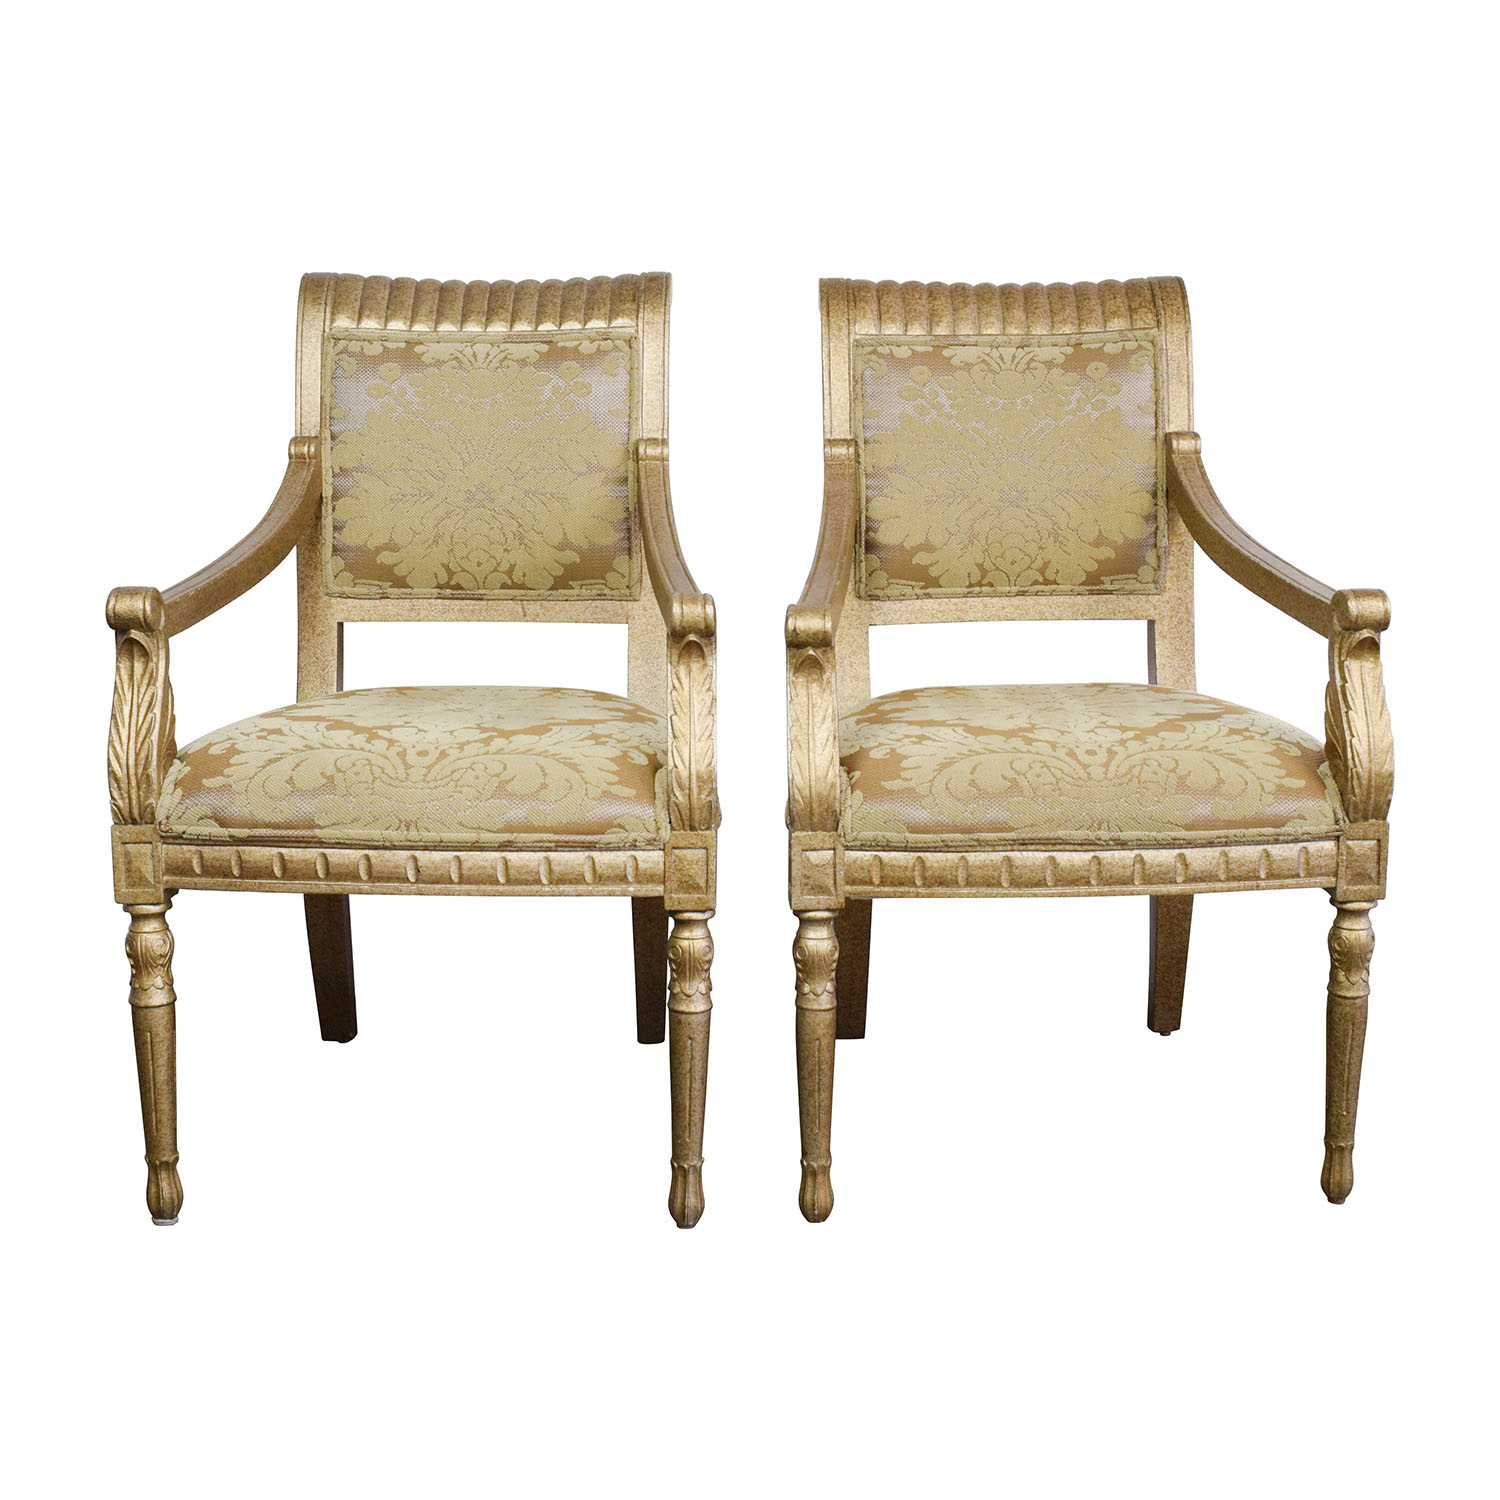 80 OFF  Rustic Gold Upholstered Arm Accent Chairs  Chairs